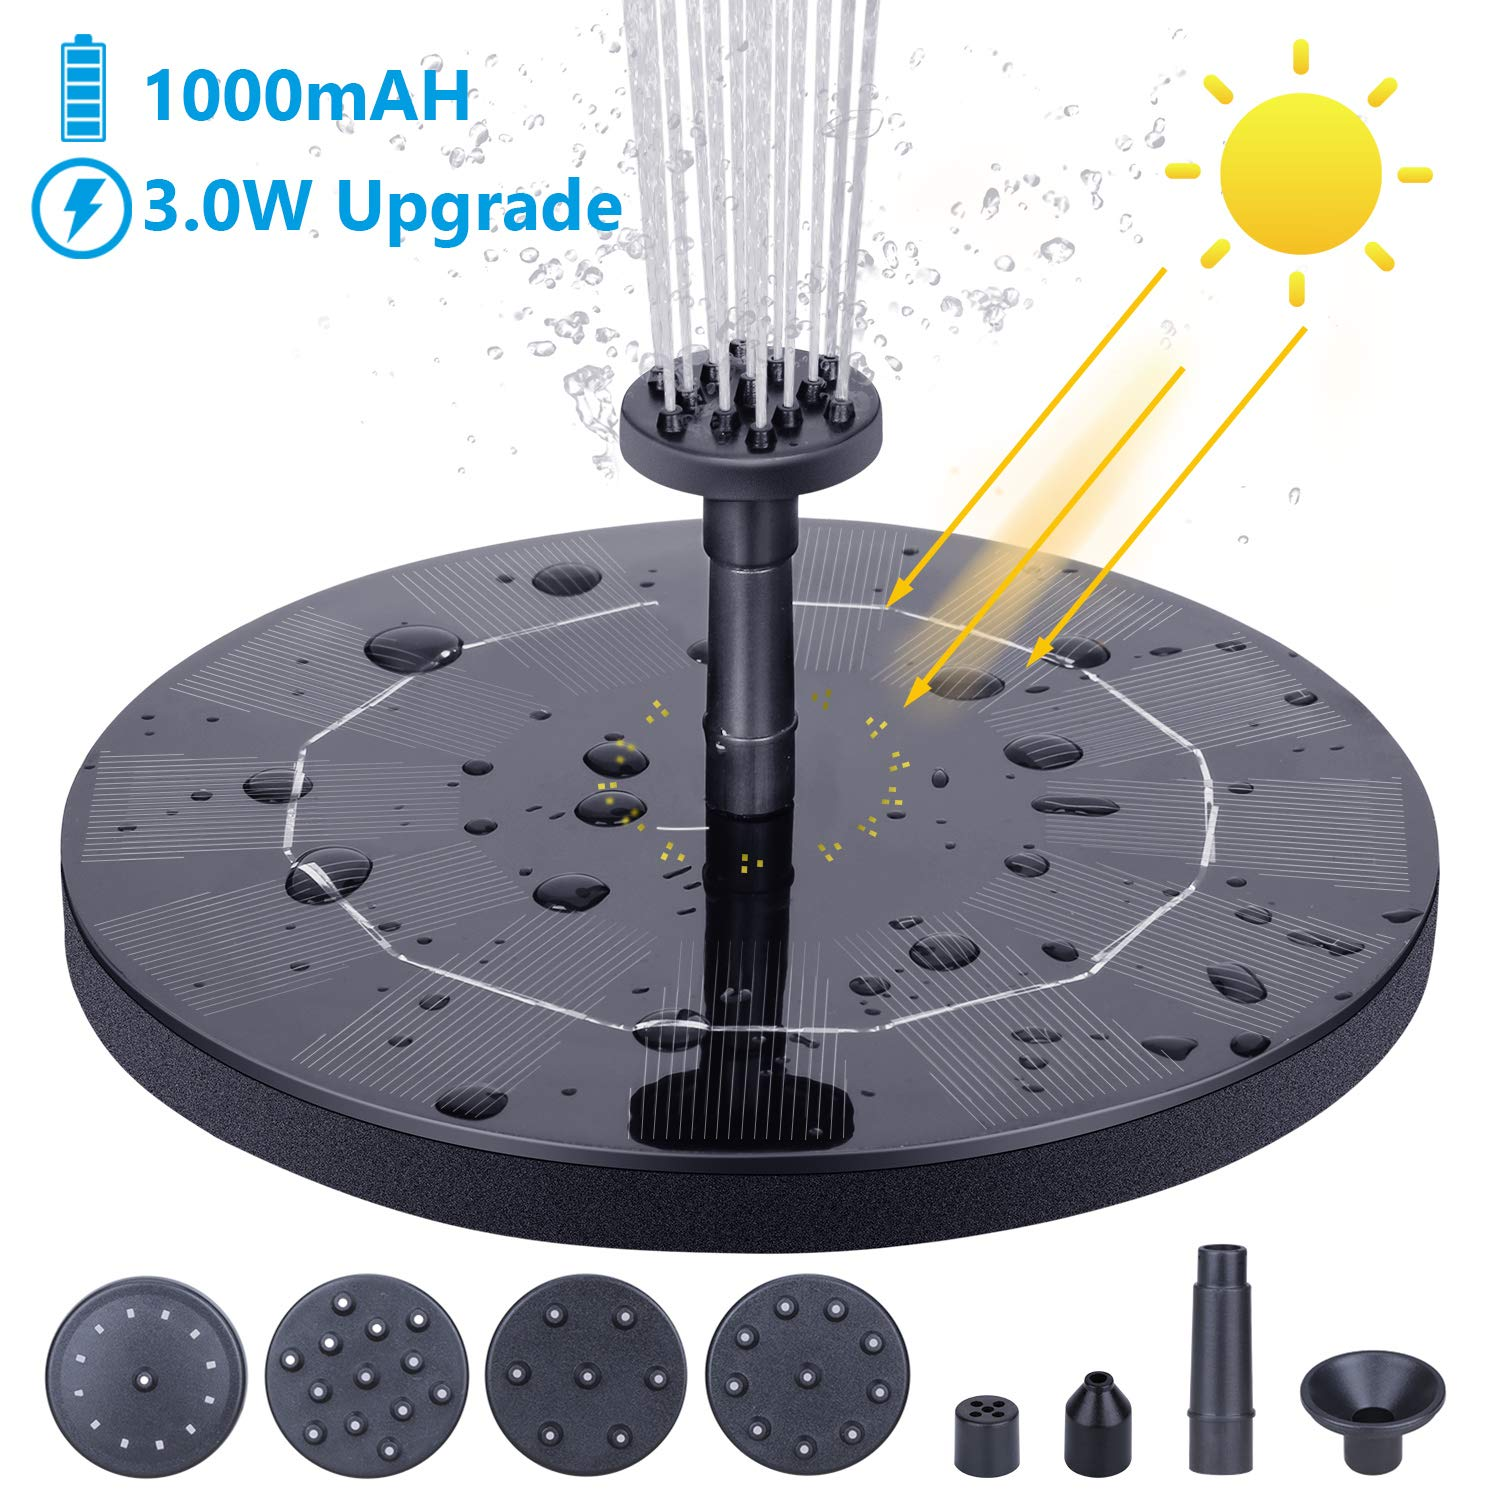 AISITIN Solar Fountain Pump, 3.0W Circle Solar Water Pump Floating Fountain Built-in Battery 1000mAh, with 6 Nozzles, for Bird Bath, Fish Tank, Pond or Garden Decoration by AISITIN